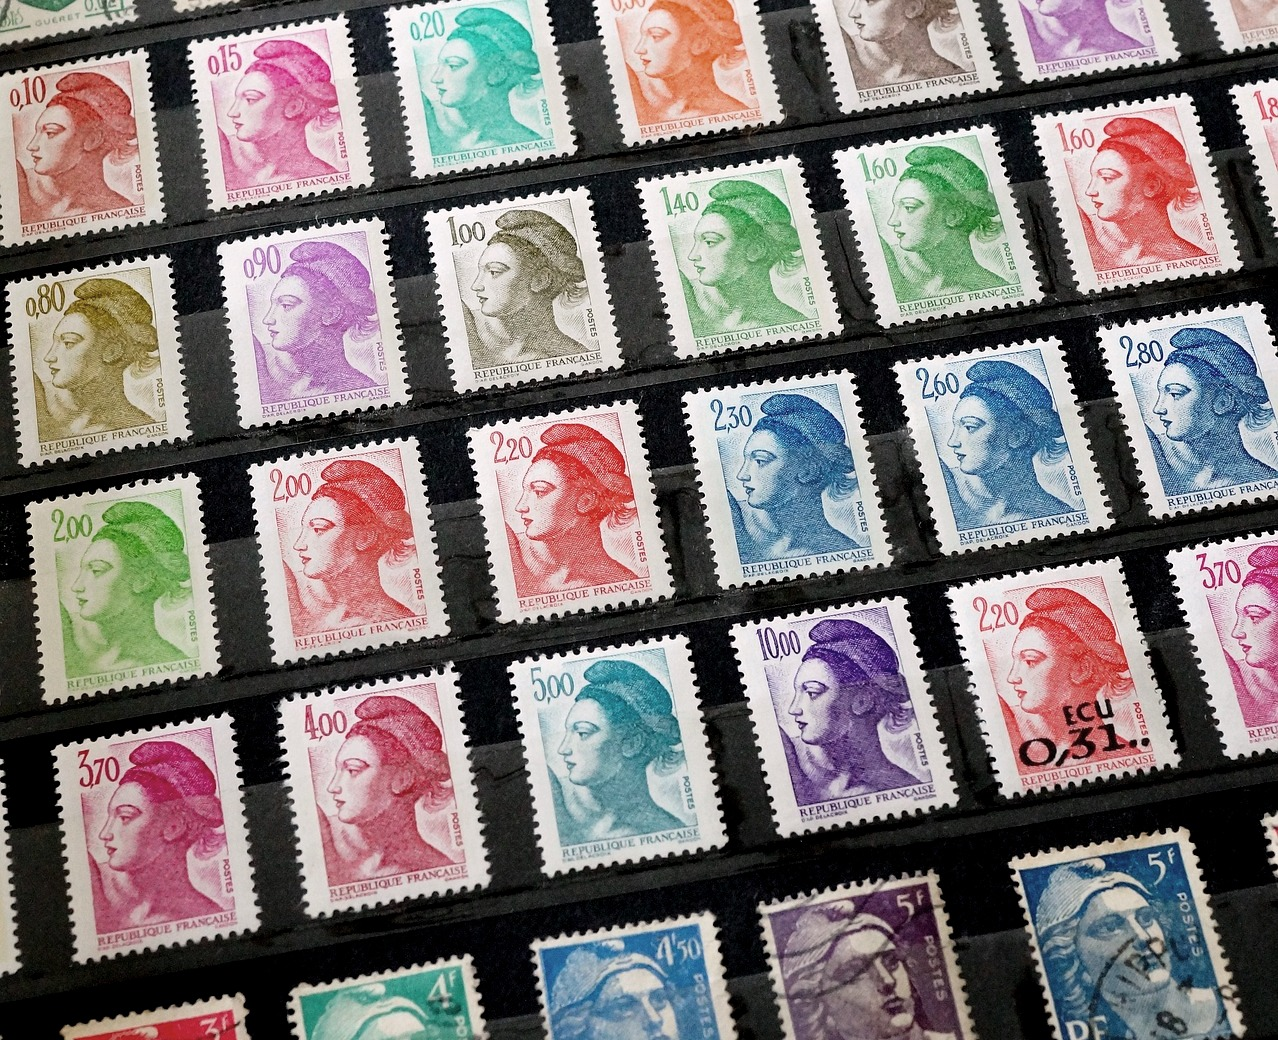 French figures - Jobs in France - Stamps Marianne